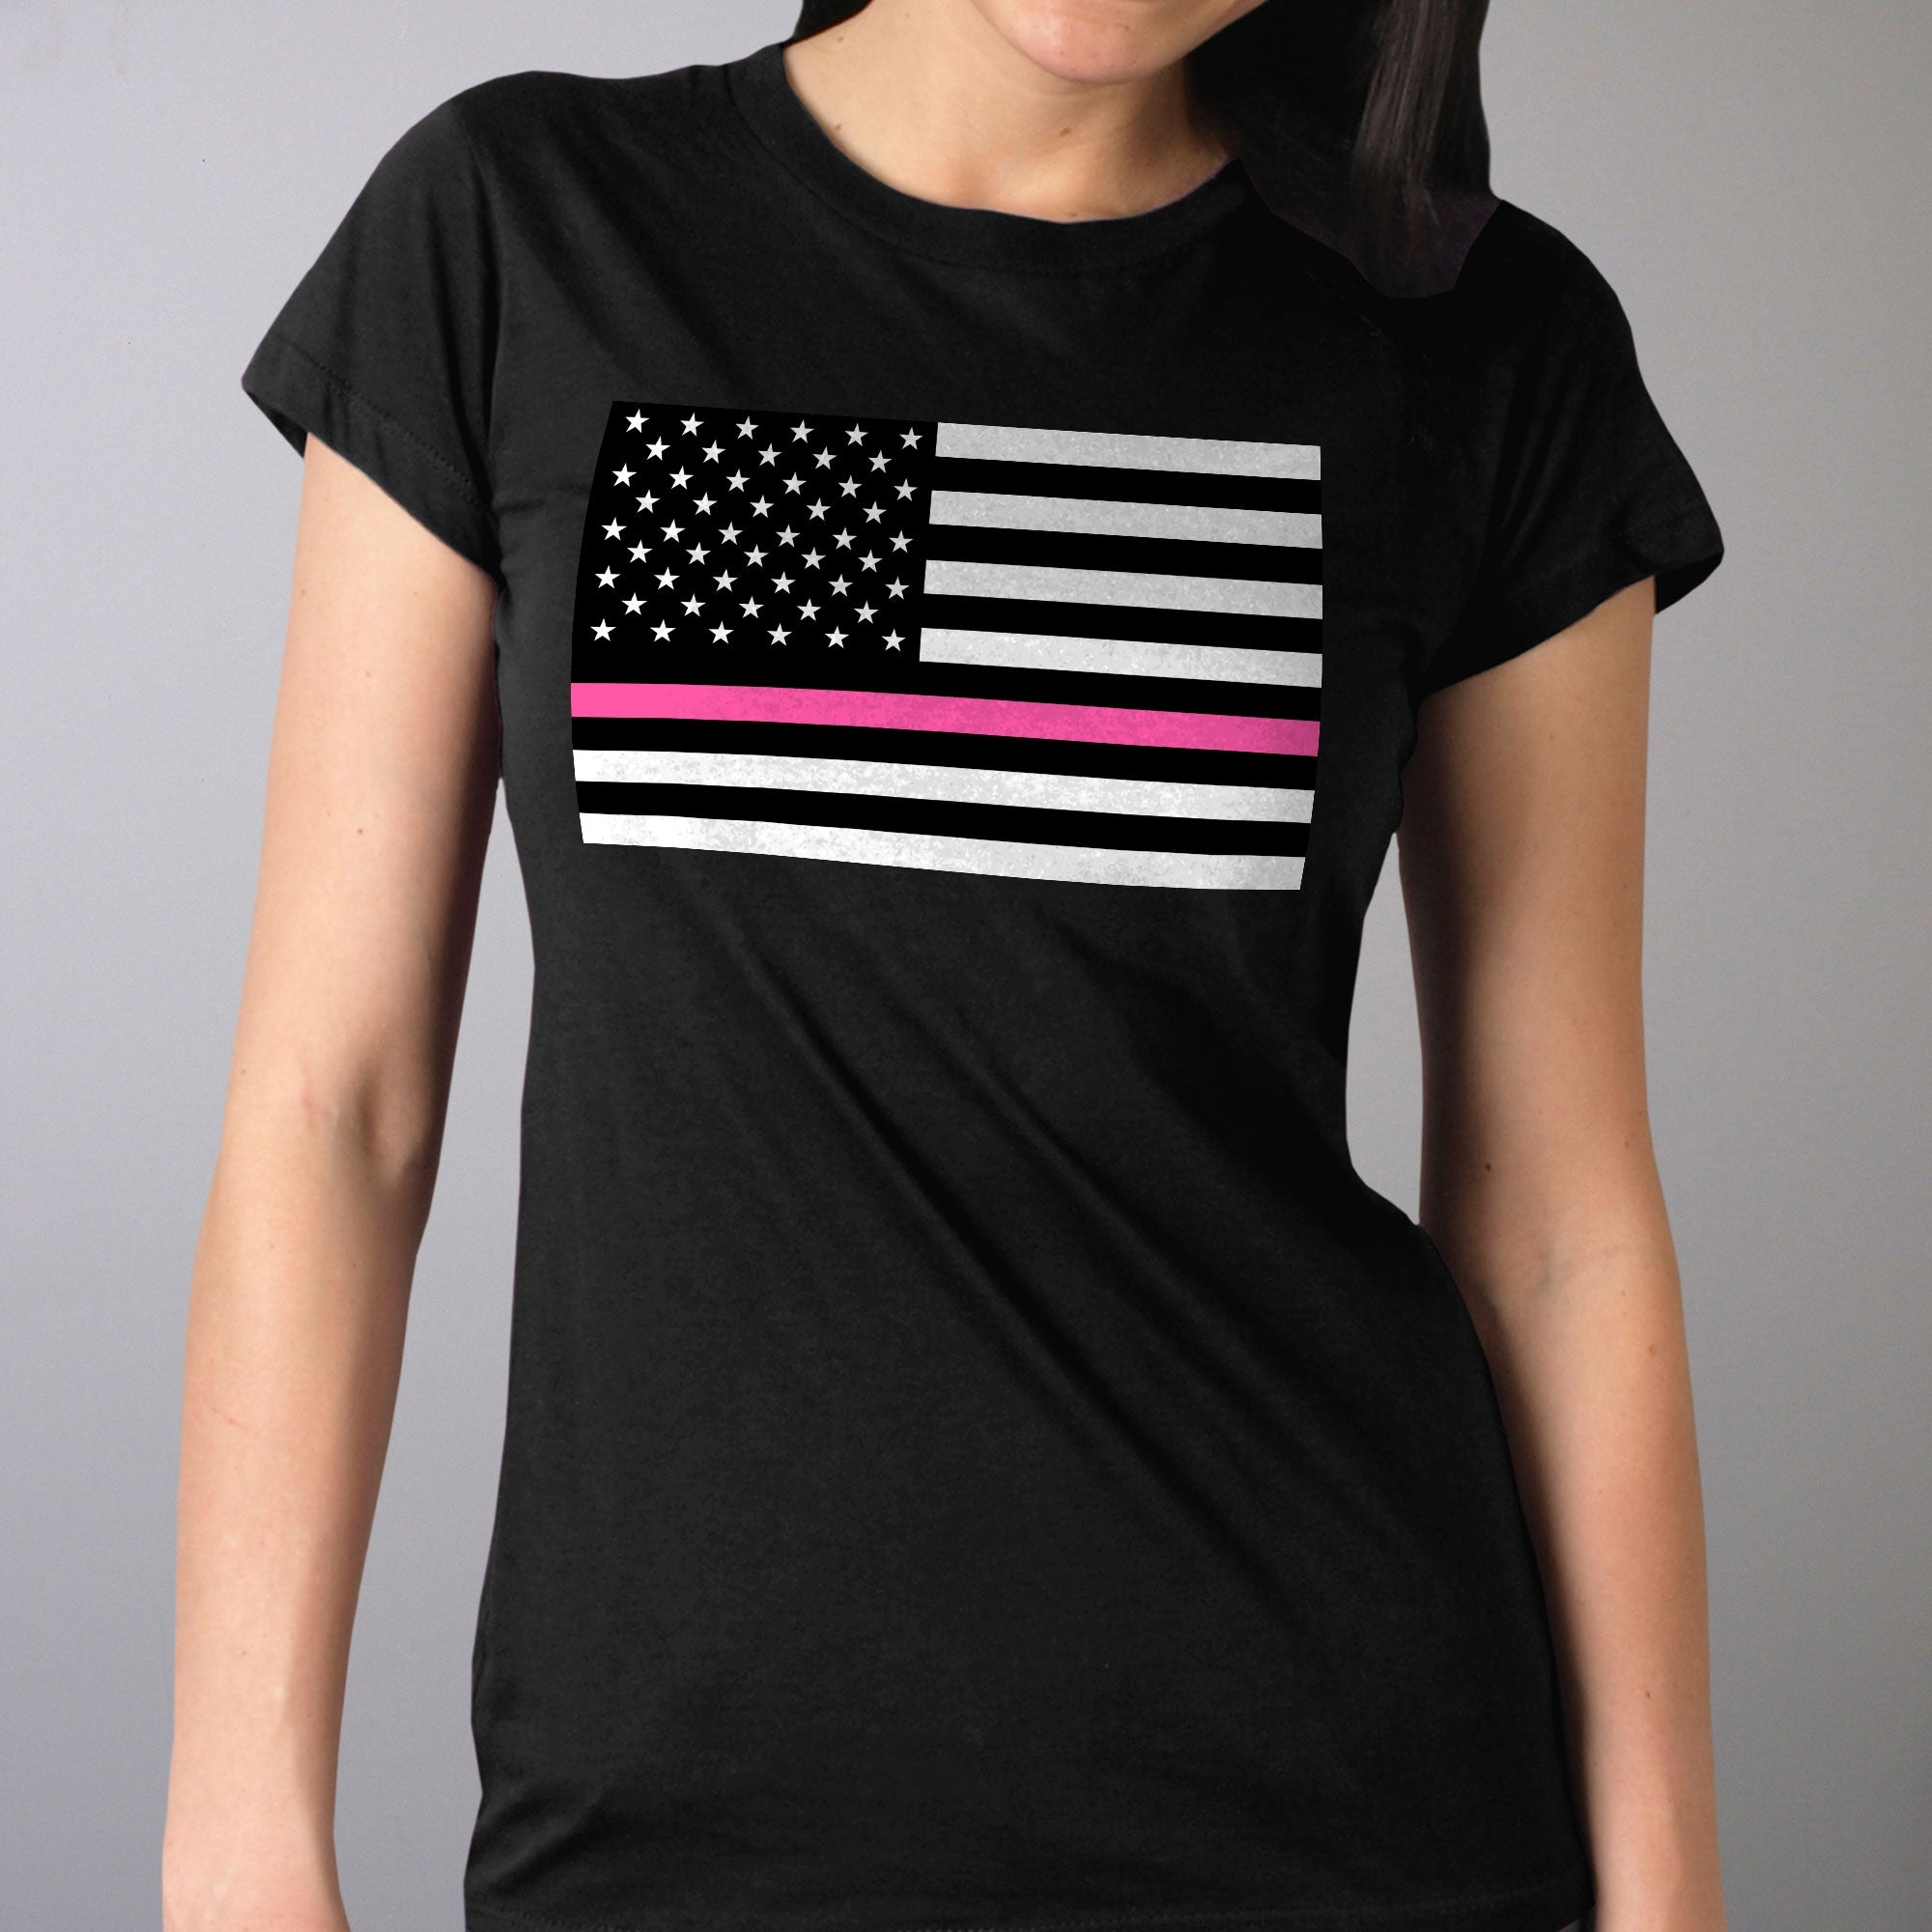 Hot Leathers Ladies Full Cut Thin Pink Line American Flag T-Shirt